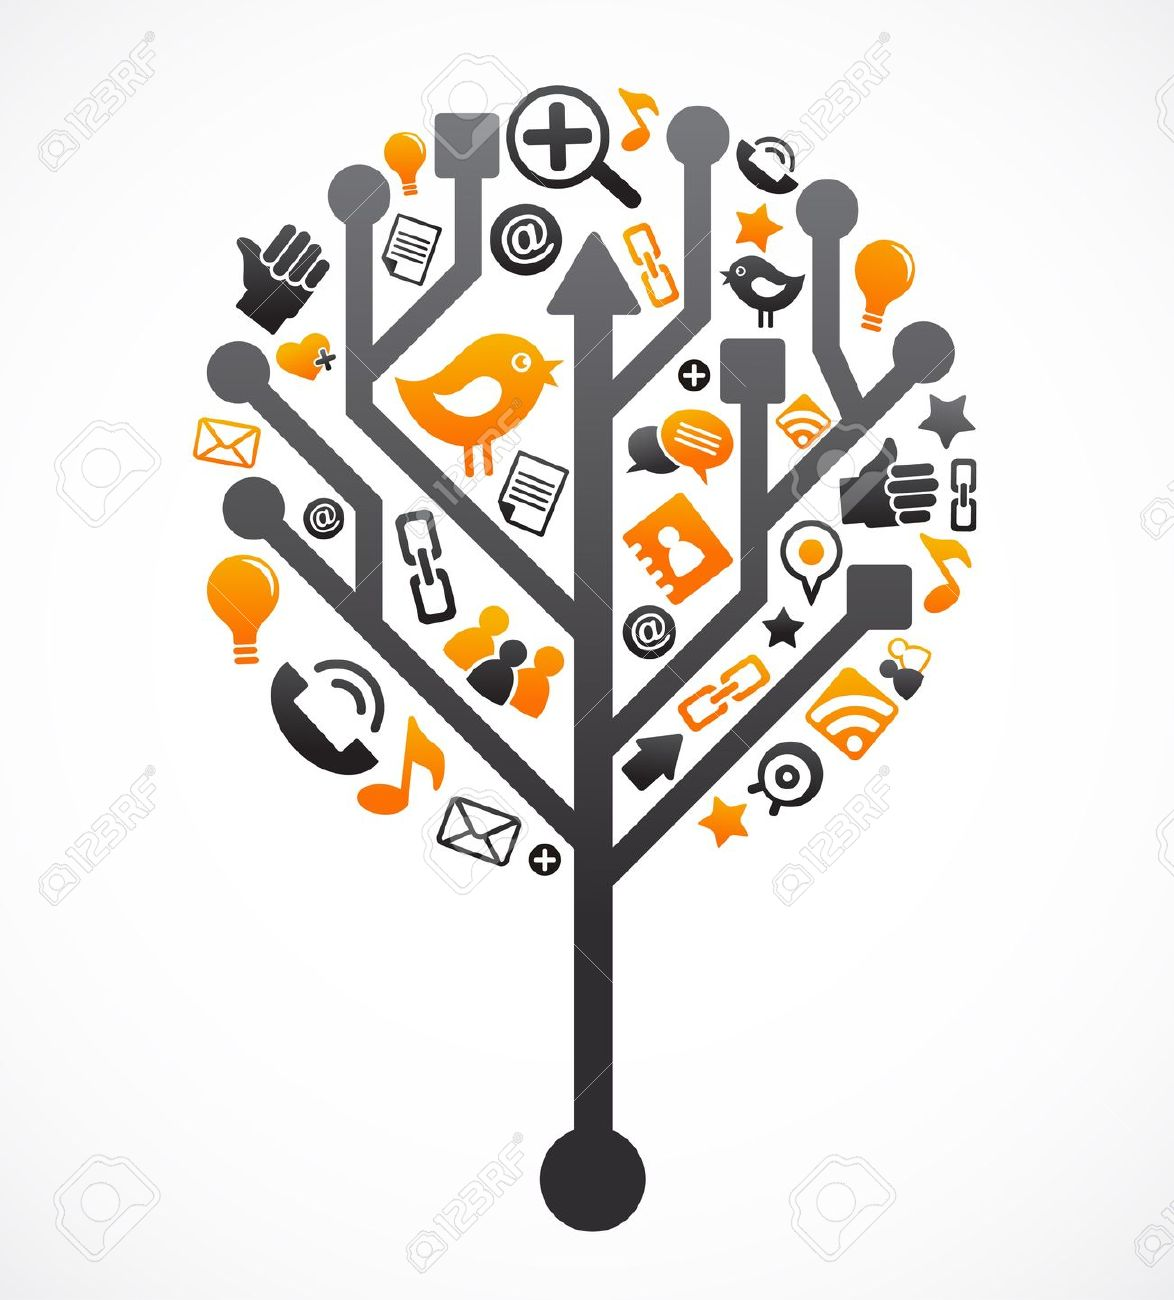 Tree with technology clipart clip transparent library Tree with technology clipart - ClipartFest clip transparent library